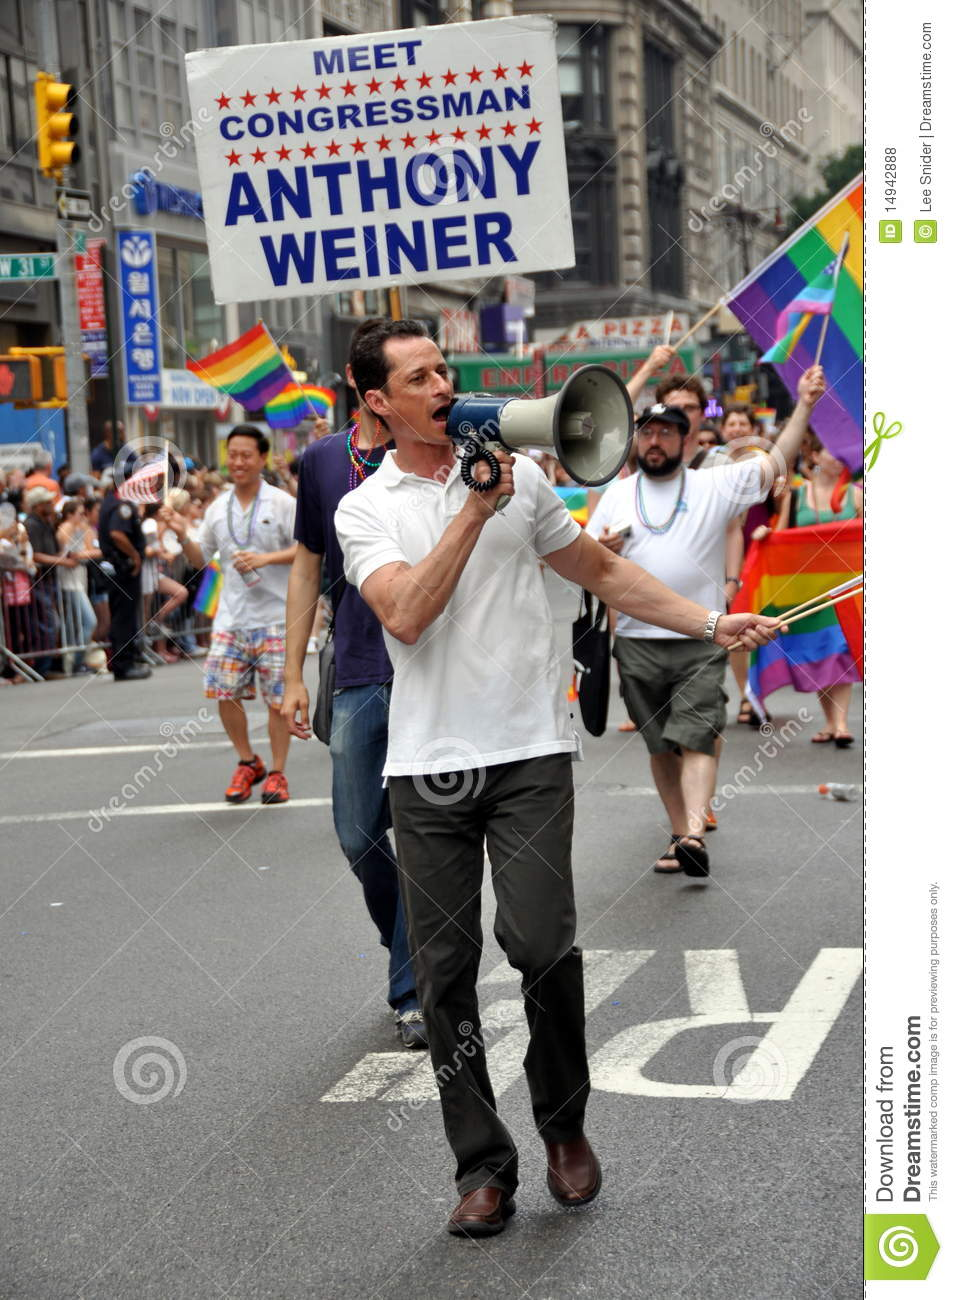 parade gay singles With free membership you can create your own profile, share photos and videos, contact and flirt with other asheville singles, visit our live chat rooms and interest groups, use instant messaging and much more.